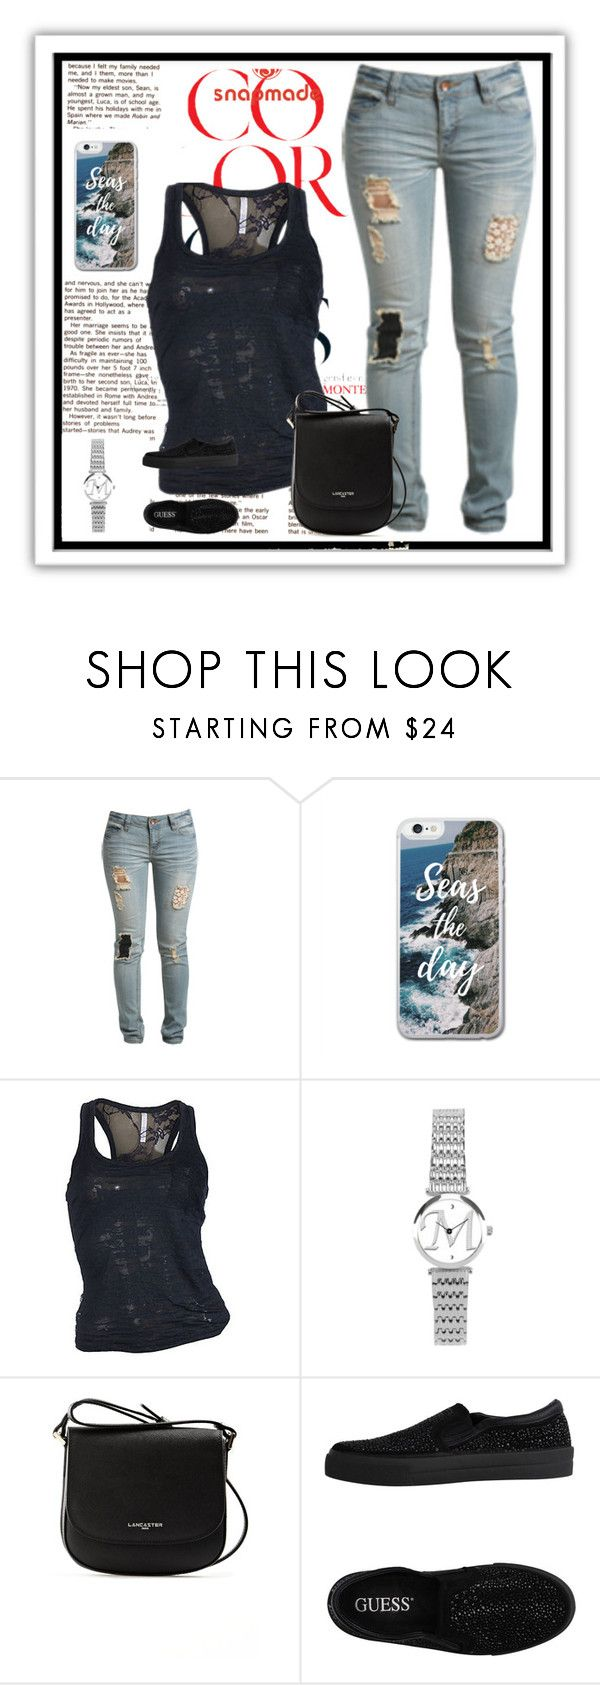 """Snapmade 2/10"" by sanela1209 ❤ liked on Polyvore featuring Wet Seal, Lancaster and GUESS"